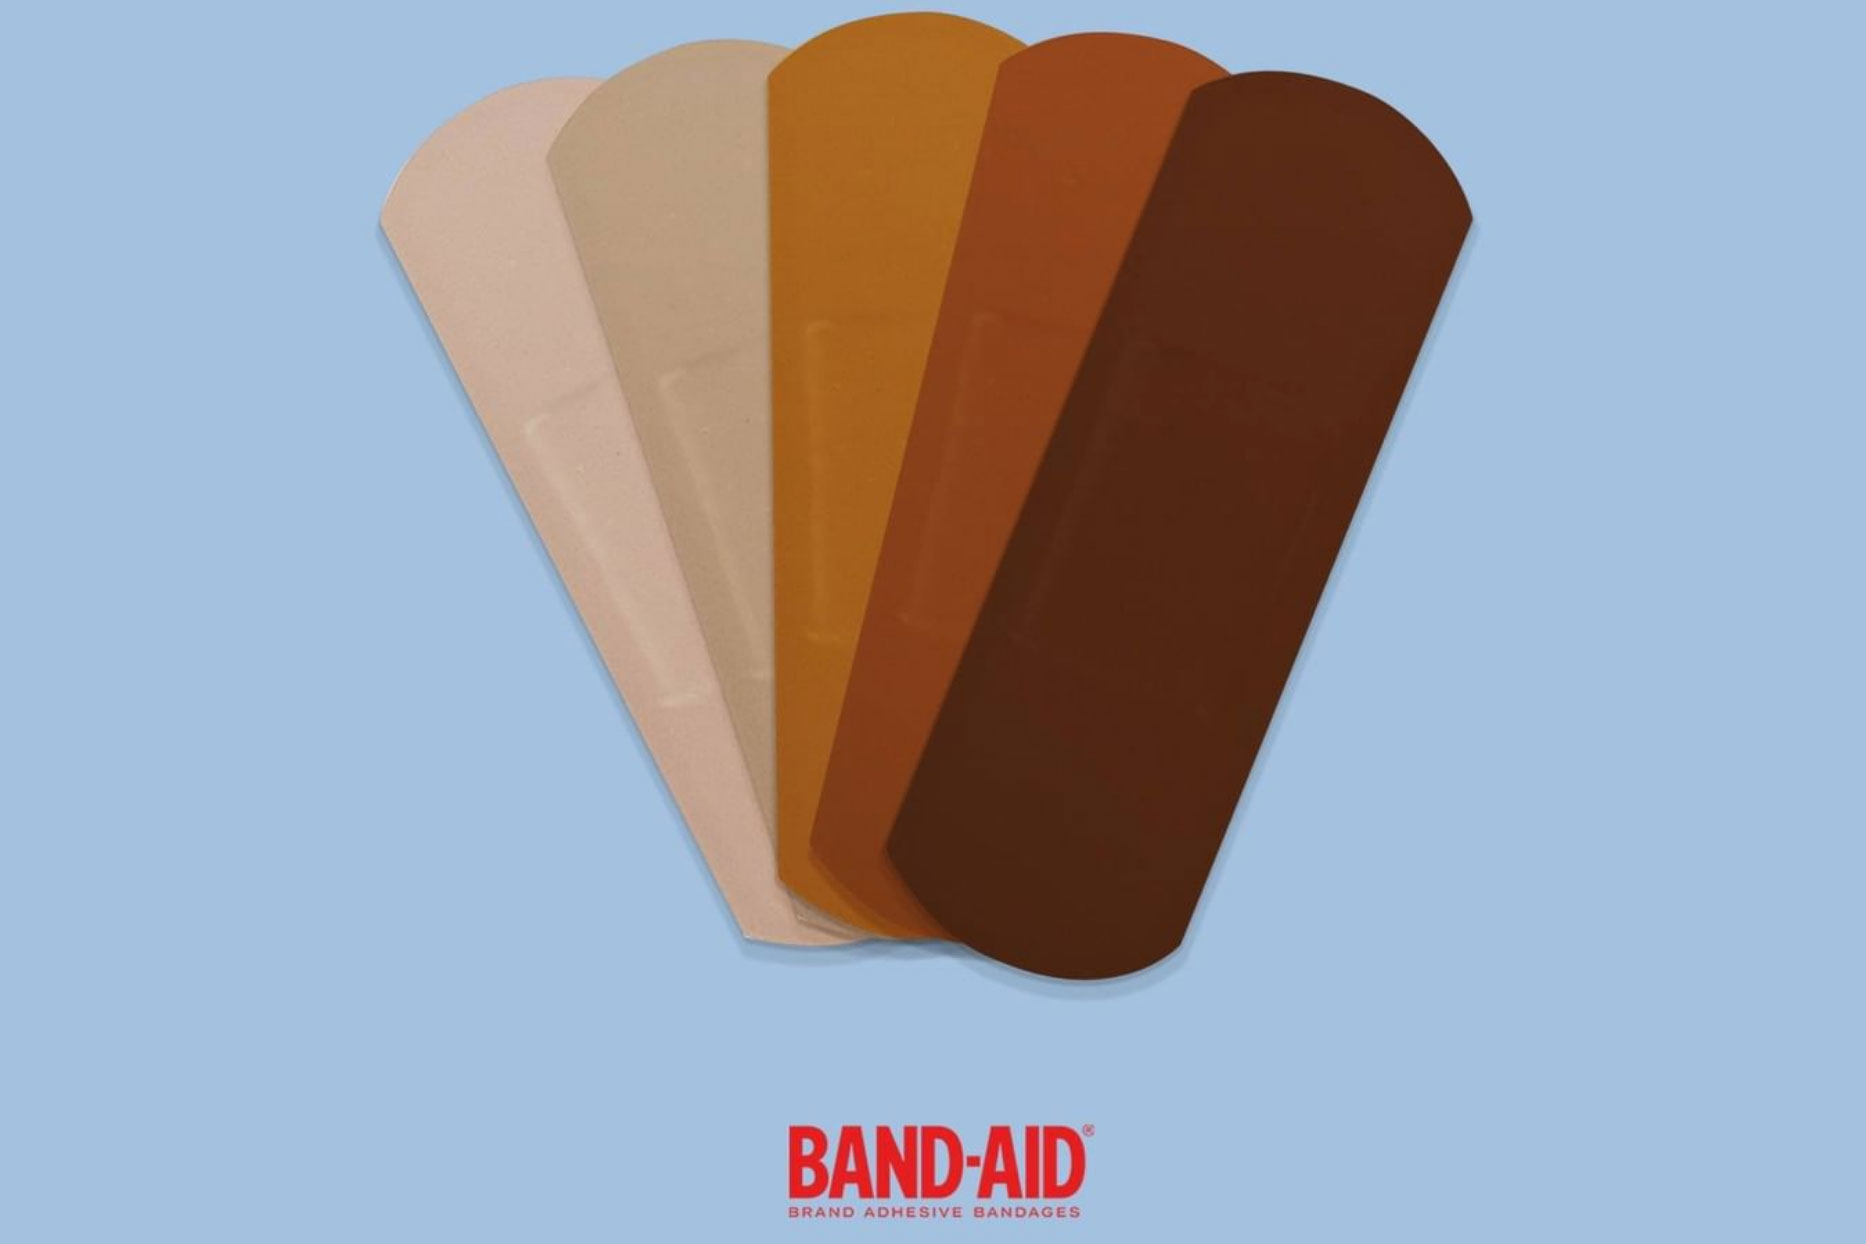 Johnson & Johnson to roll out a Band-Aid in several shades for ...